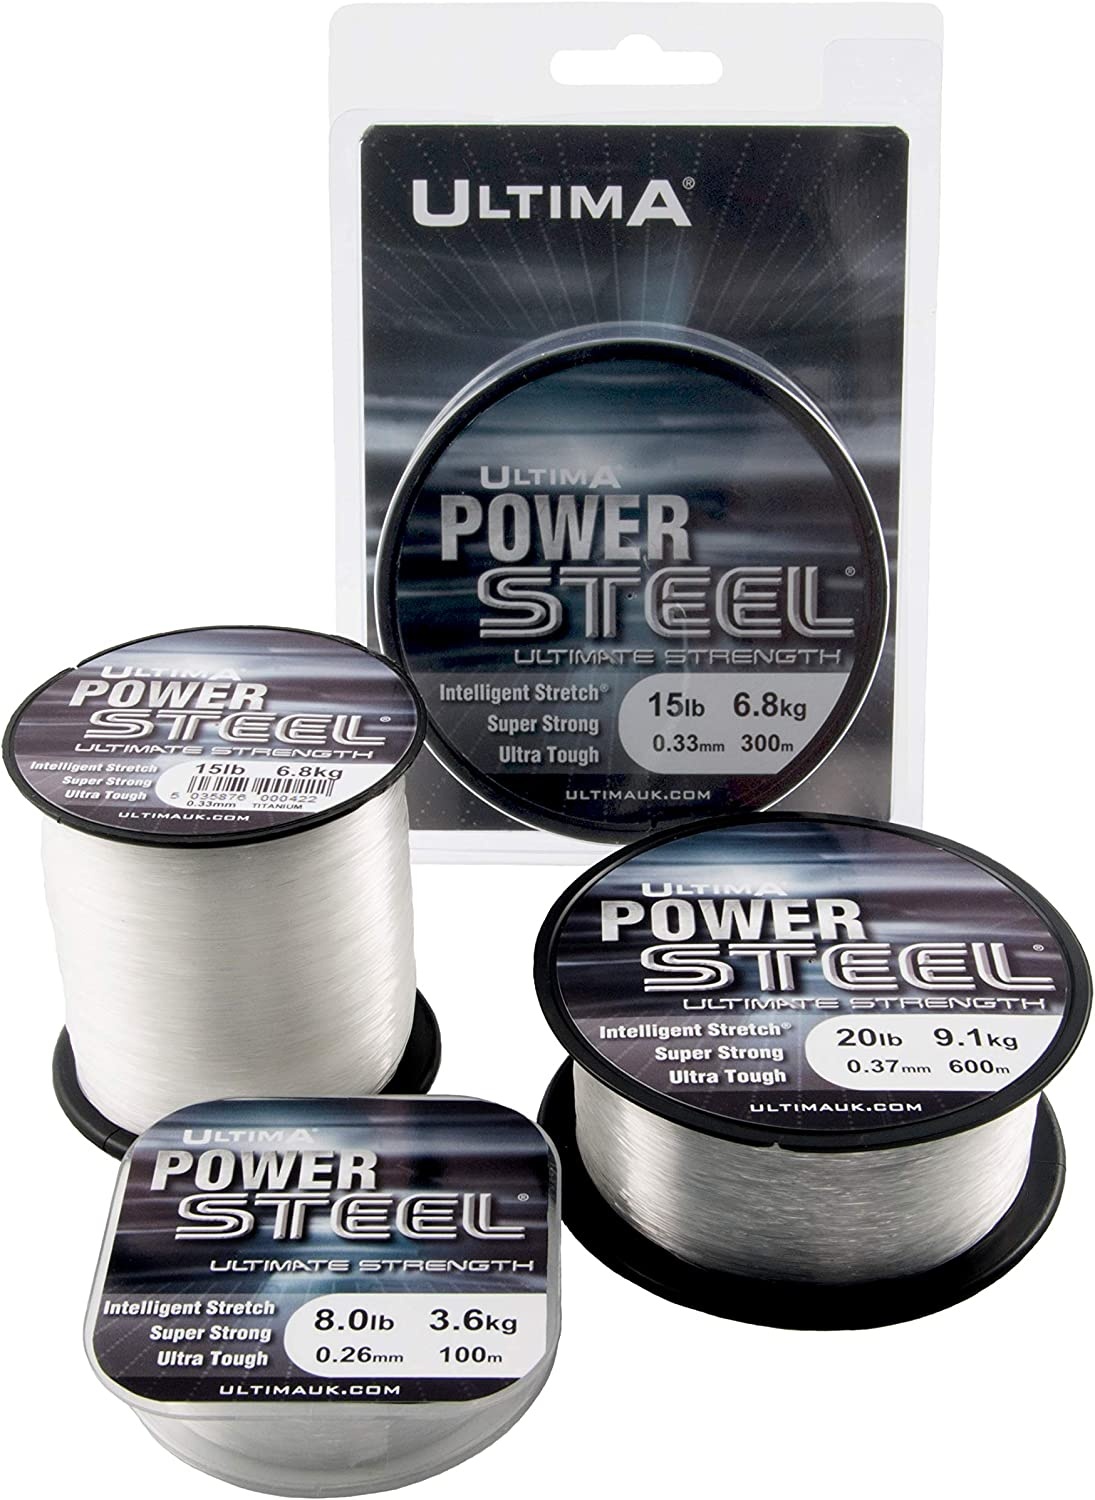 15.0 lb ULTIMA Unisexs E0133 Power Steel Super Strong Mono Fishing Line Crystal 0.32 mm